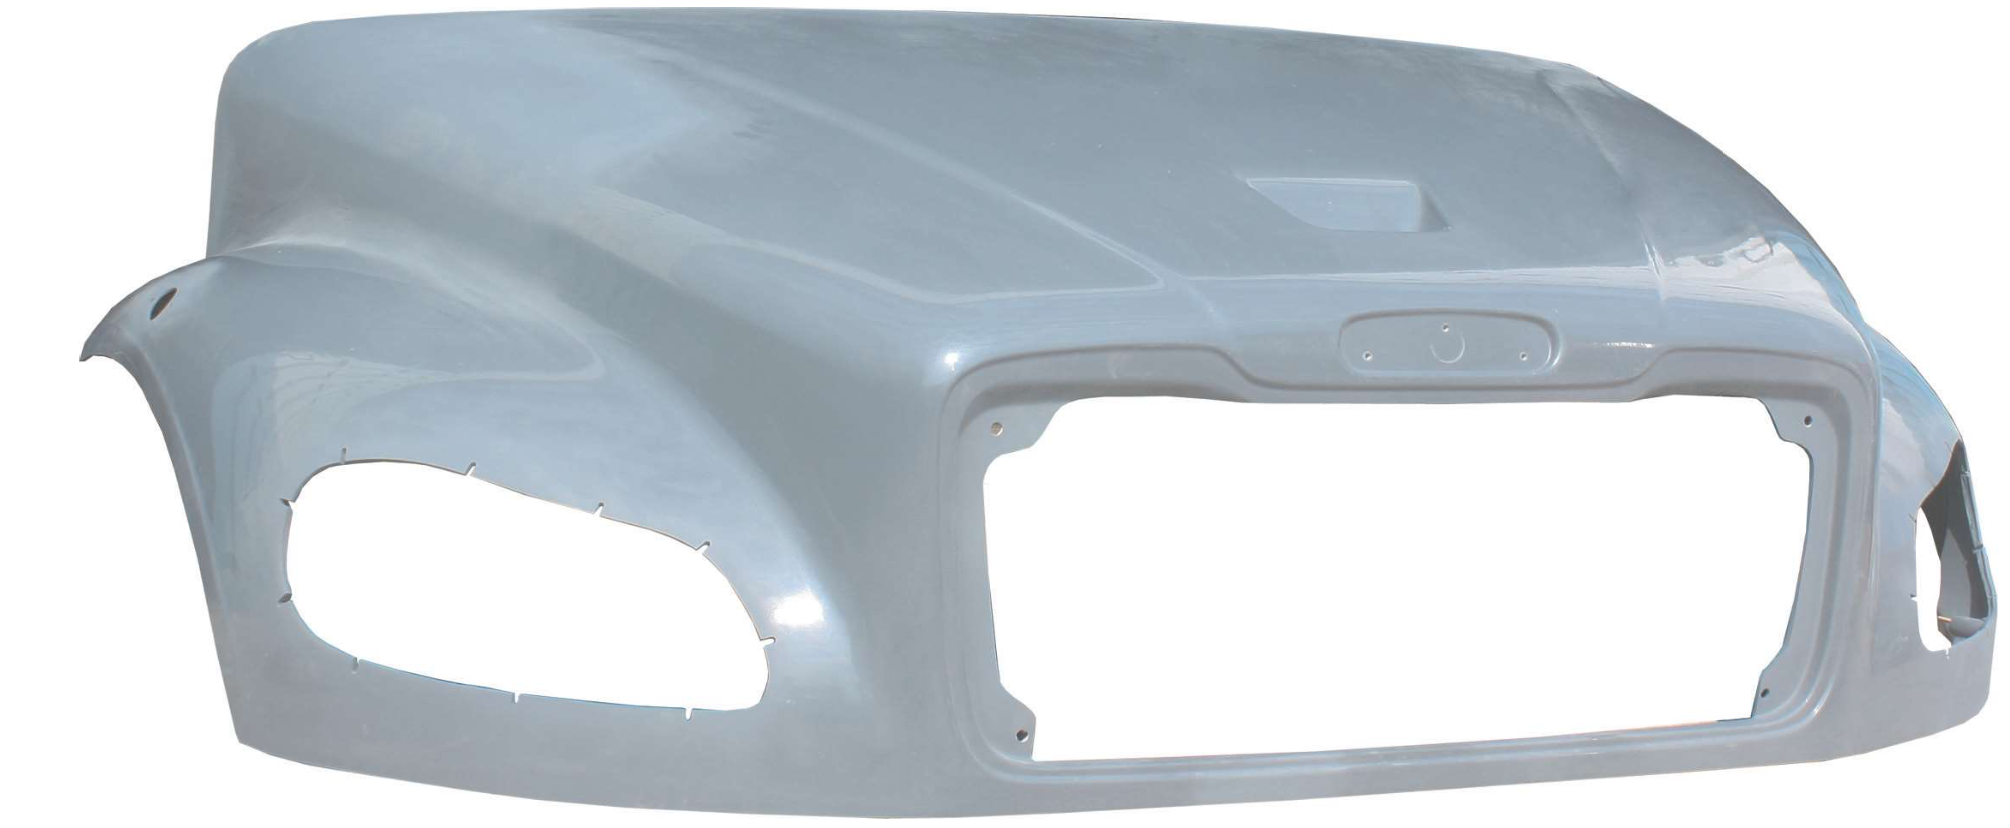 10009-N Freightliner Hood M2 106 Fiberglass 2003 & Newer Replaces OEM A17-19133-032  A17-19133-022 A17-19133-012 A17-19218-012 - BC Heavy Truck